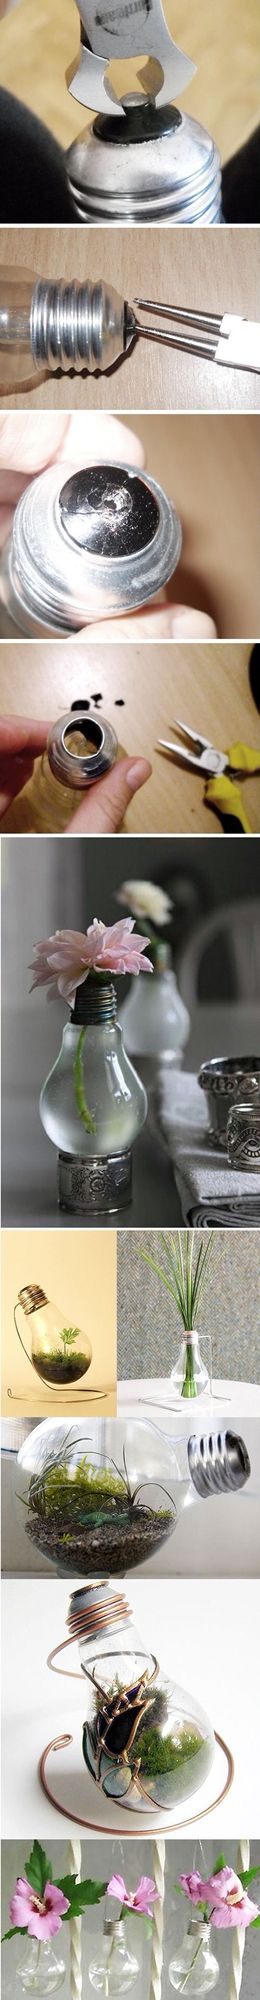 DIY, recycled light bulbs! What a great idea!